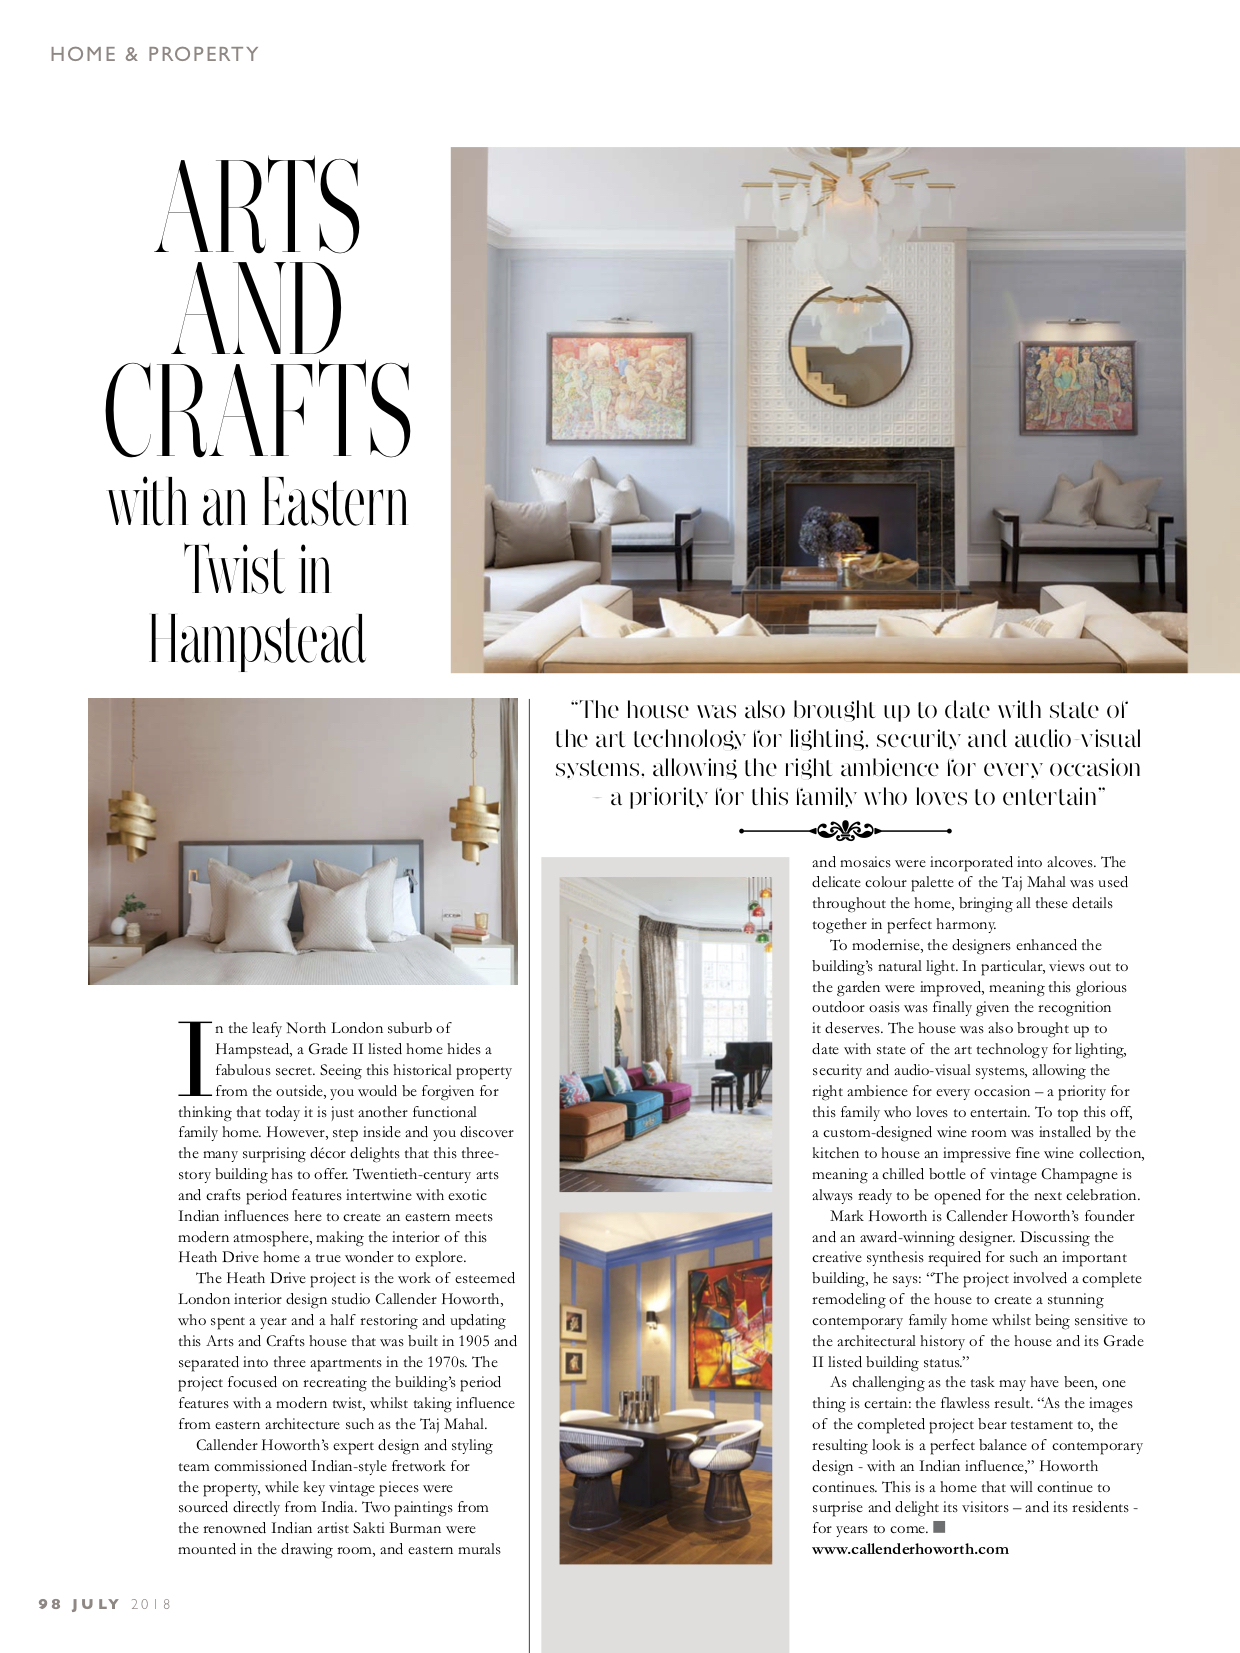 Wealden Times - Hampstead property